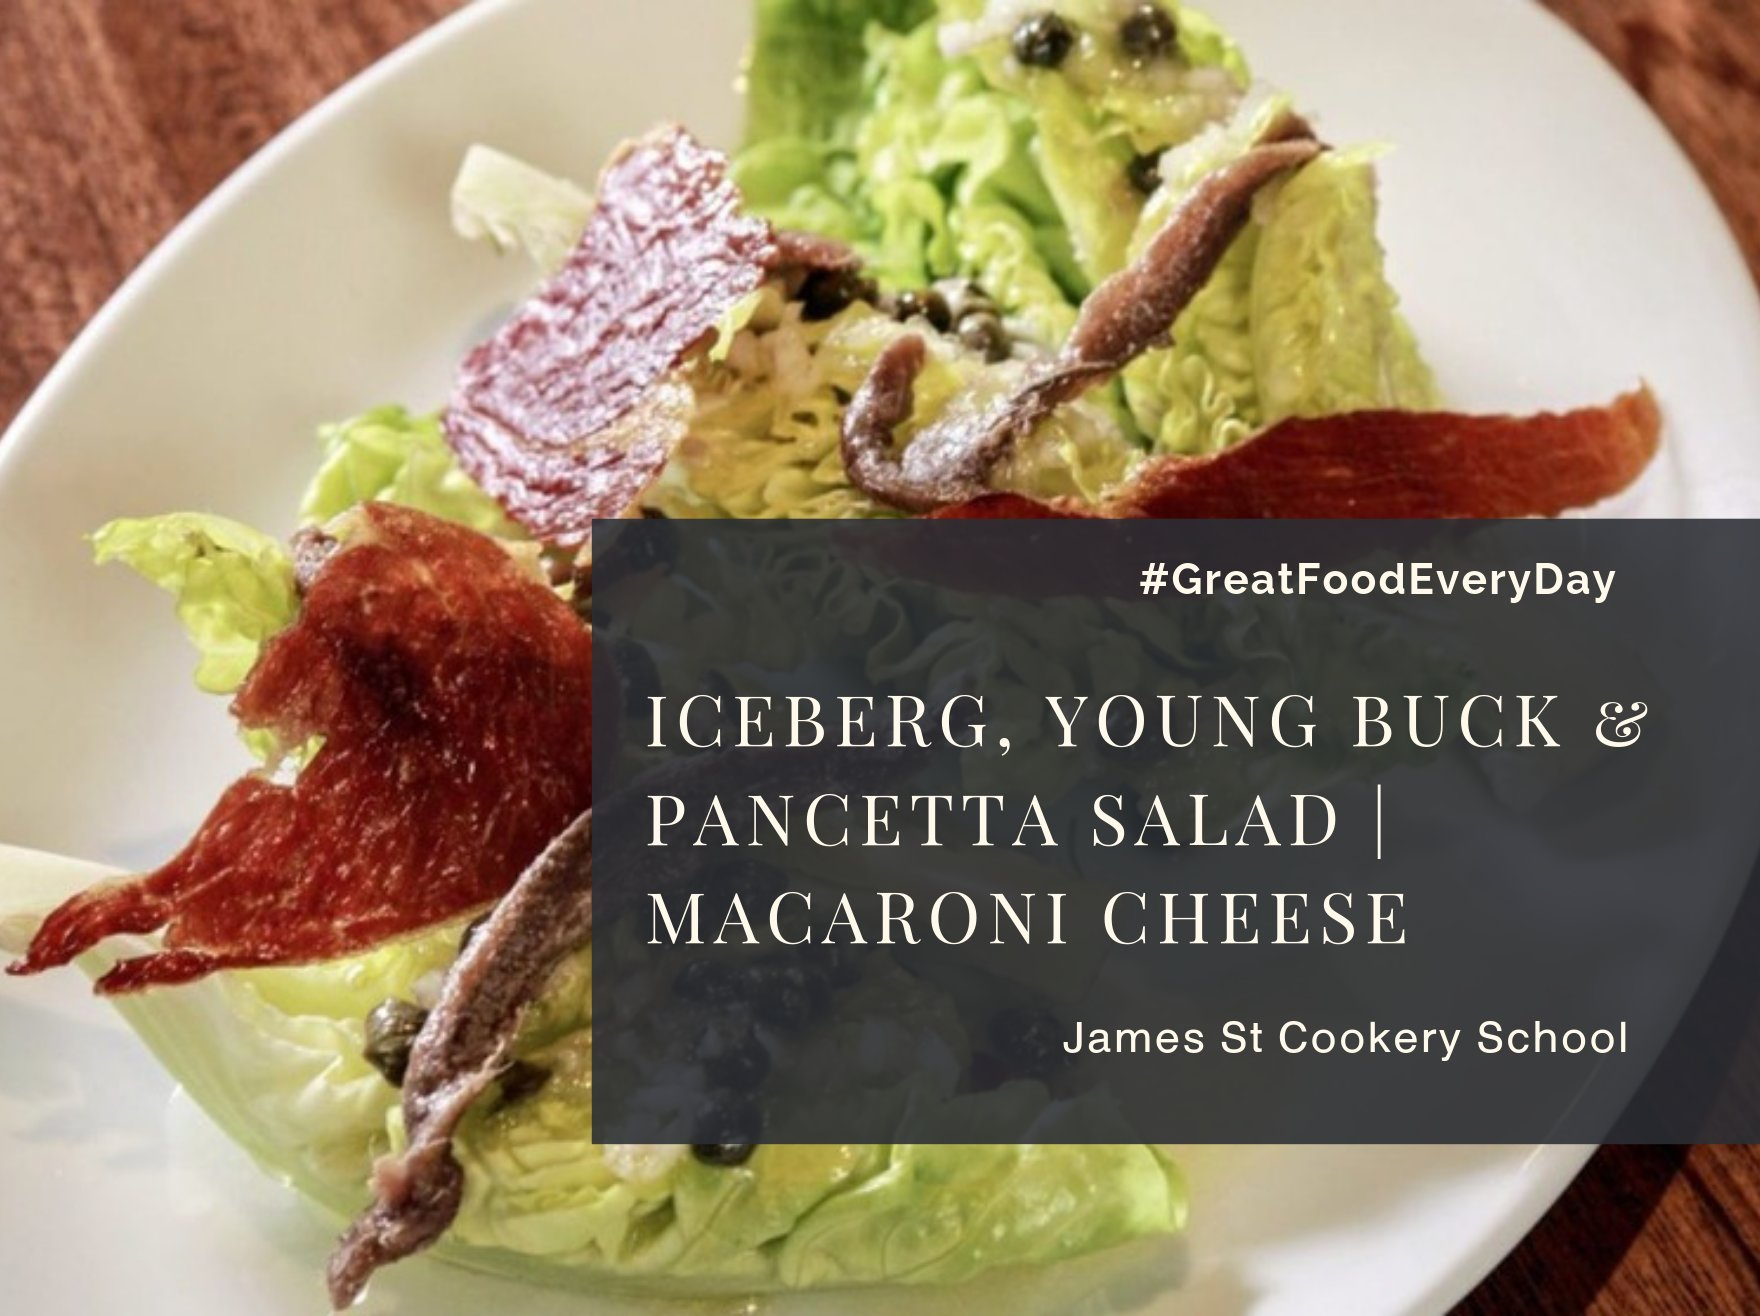 Iceberg, Young Buck and pancetta salad; macaroni cheese